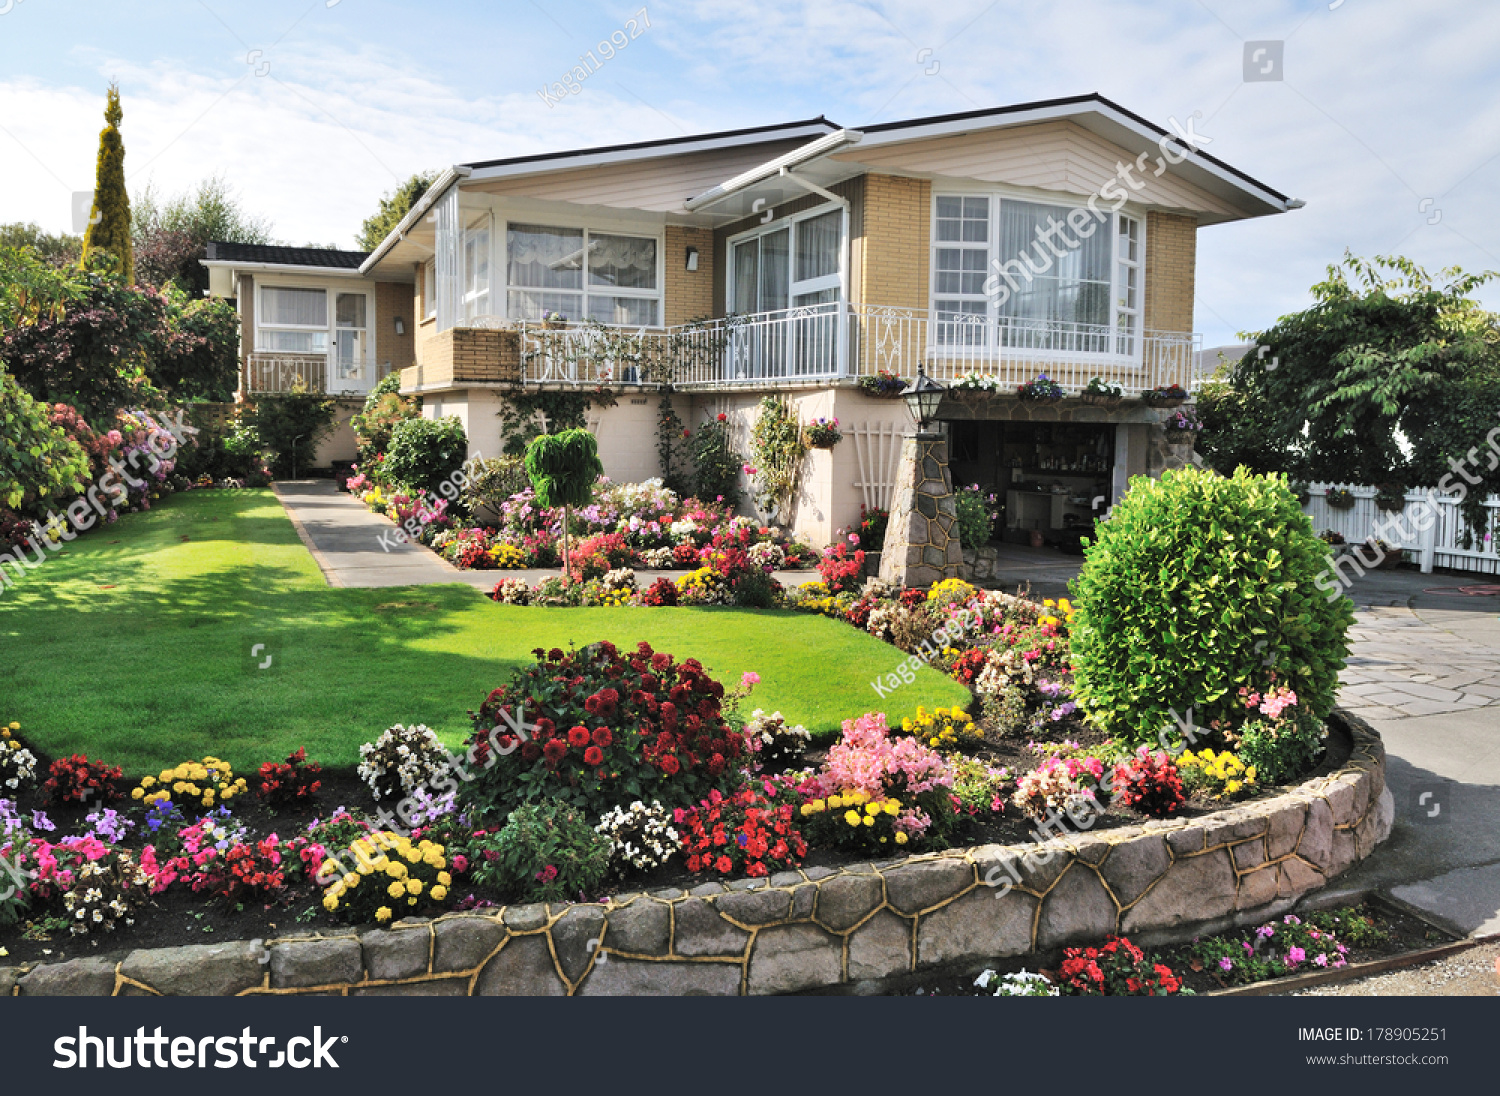 Beautiful home with beautiful flowers garden property for Home beautiful pictures